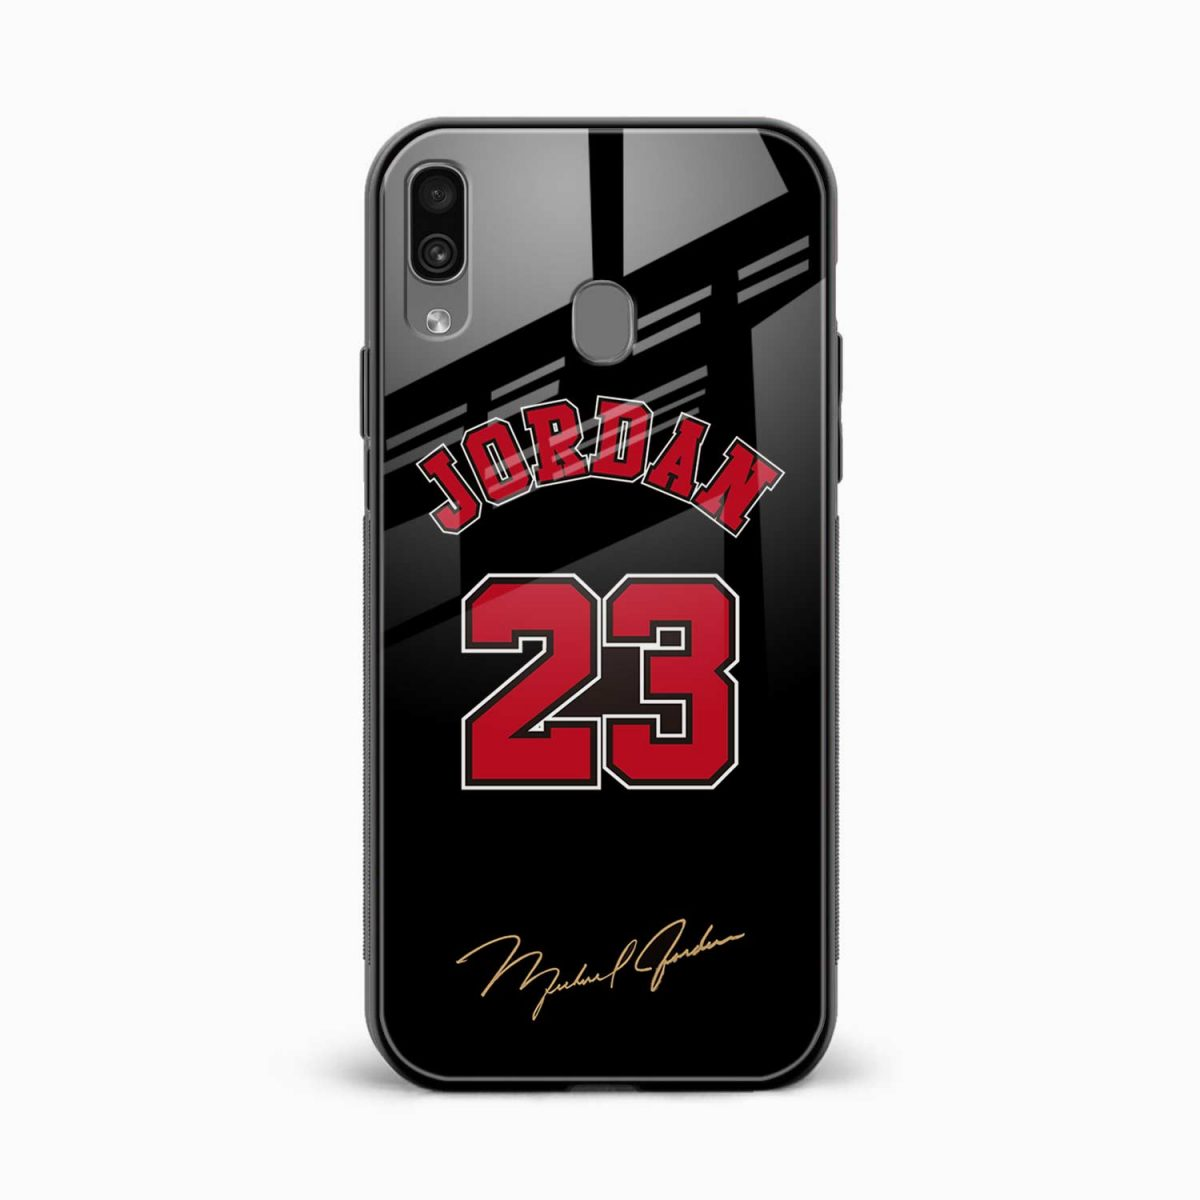 jordan front view samsung galaxy a30 back cover